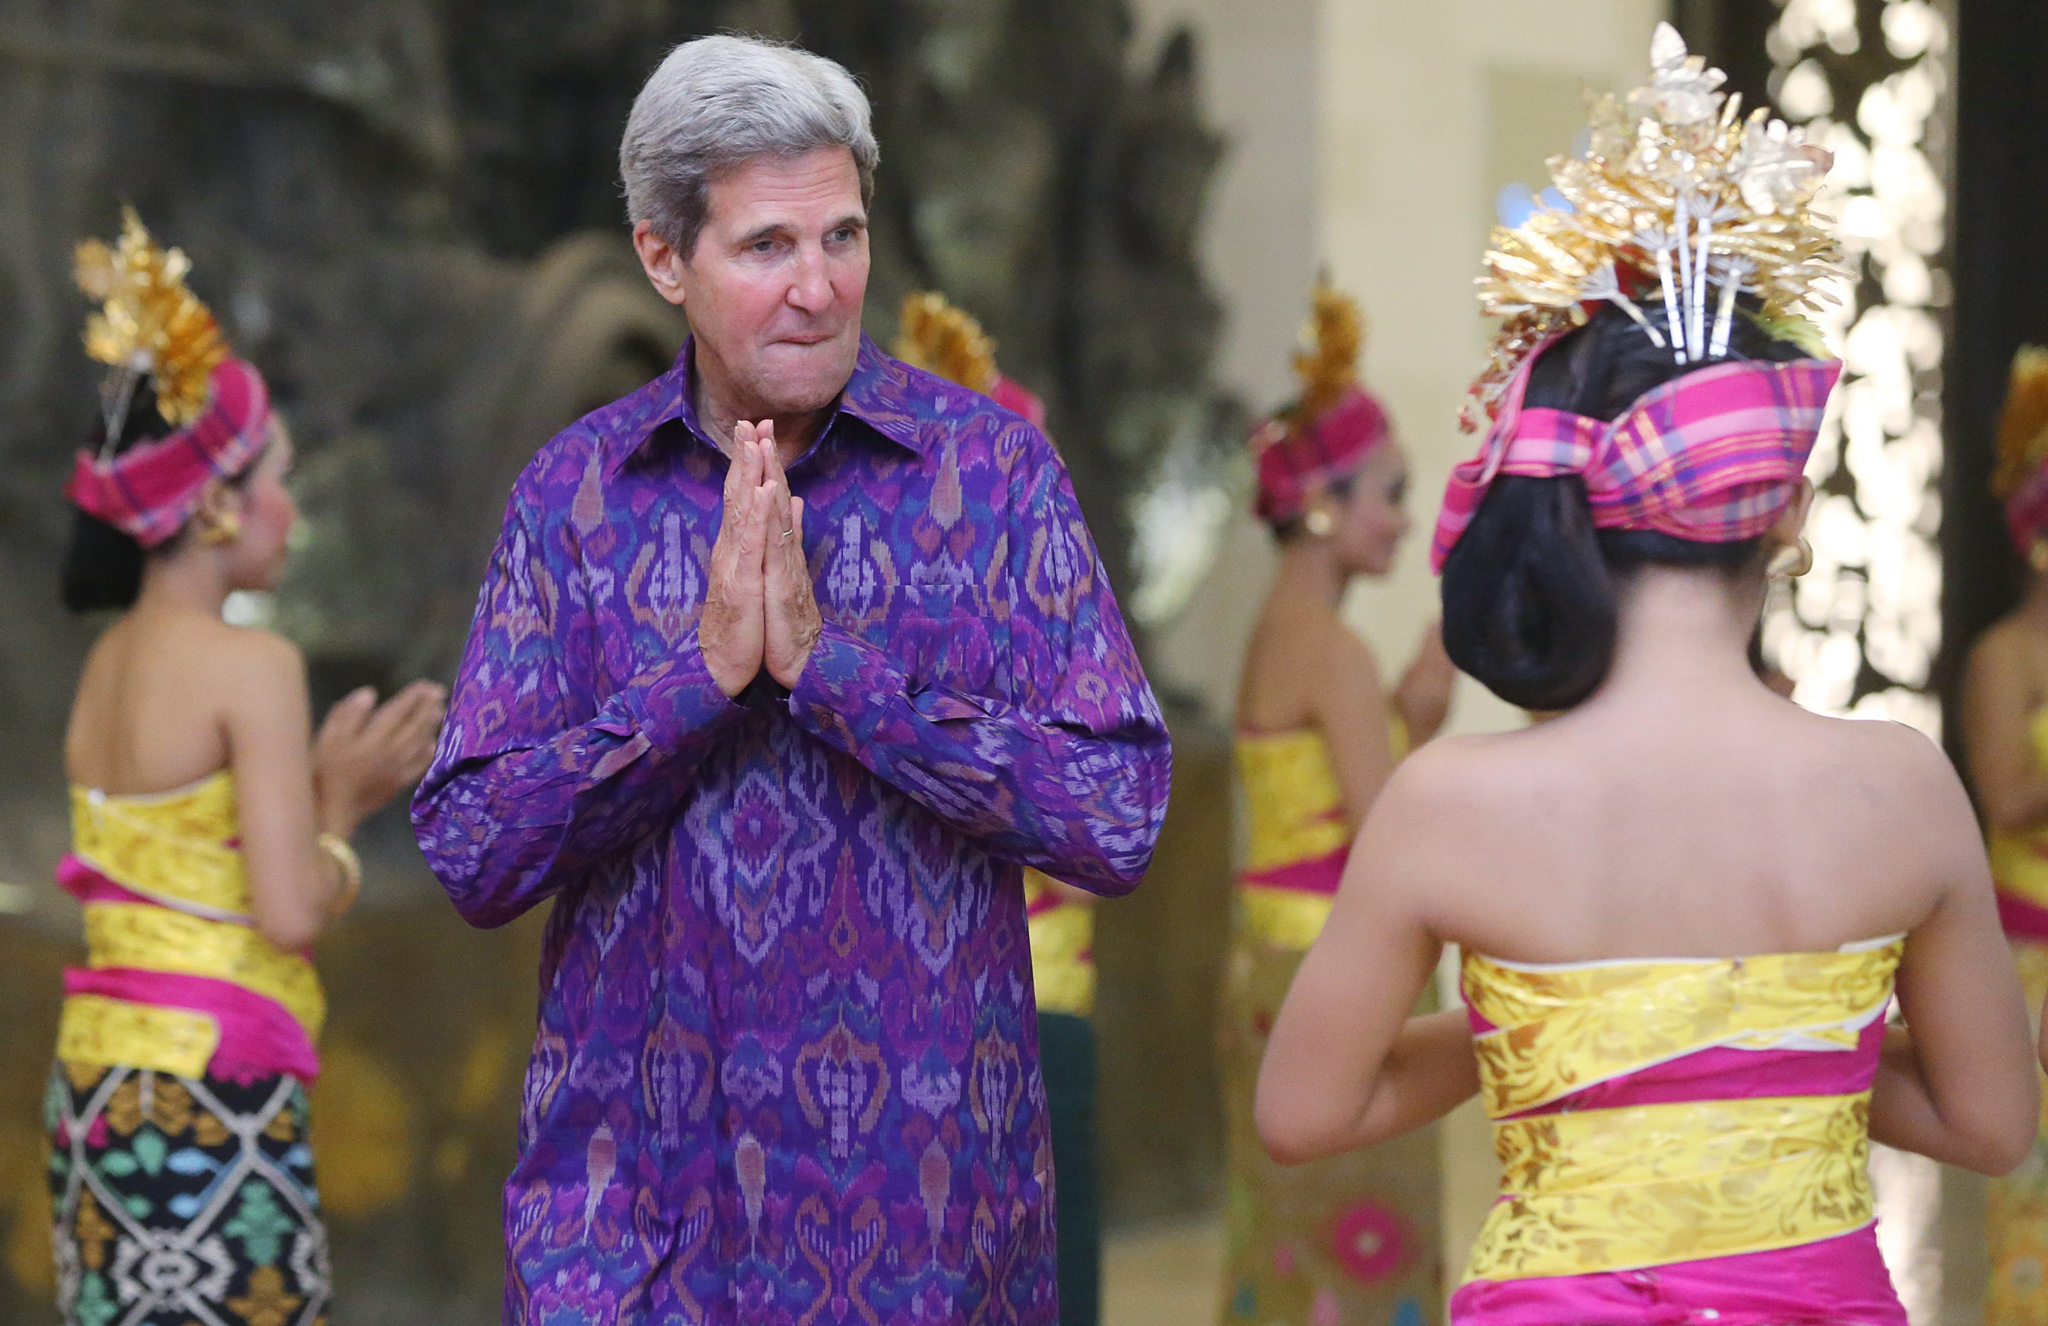 APEC 2013 summit in Indonesia...epa03900660 US Secretary of State John Kerry, welcomed by Indonesian beauties, gestures while arriving with Russian President Vladimir Putin (L) for a group photo at Asia-Pacific Economic Cooperation (APEC) Summit  in Nusa Dua , Bali, Indonesia, 07 October 2013  EPA/SERGEI CHIRIKOV